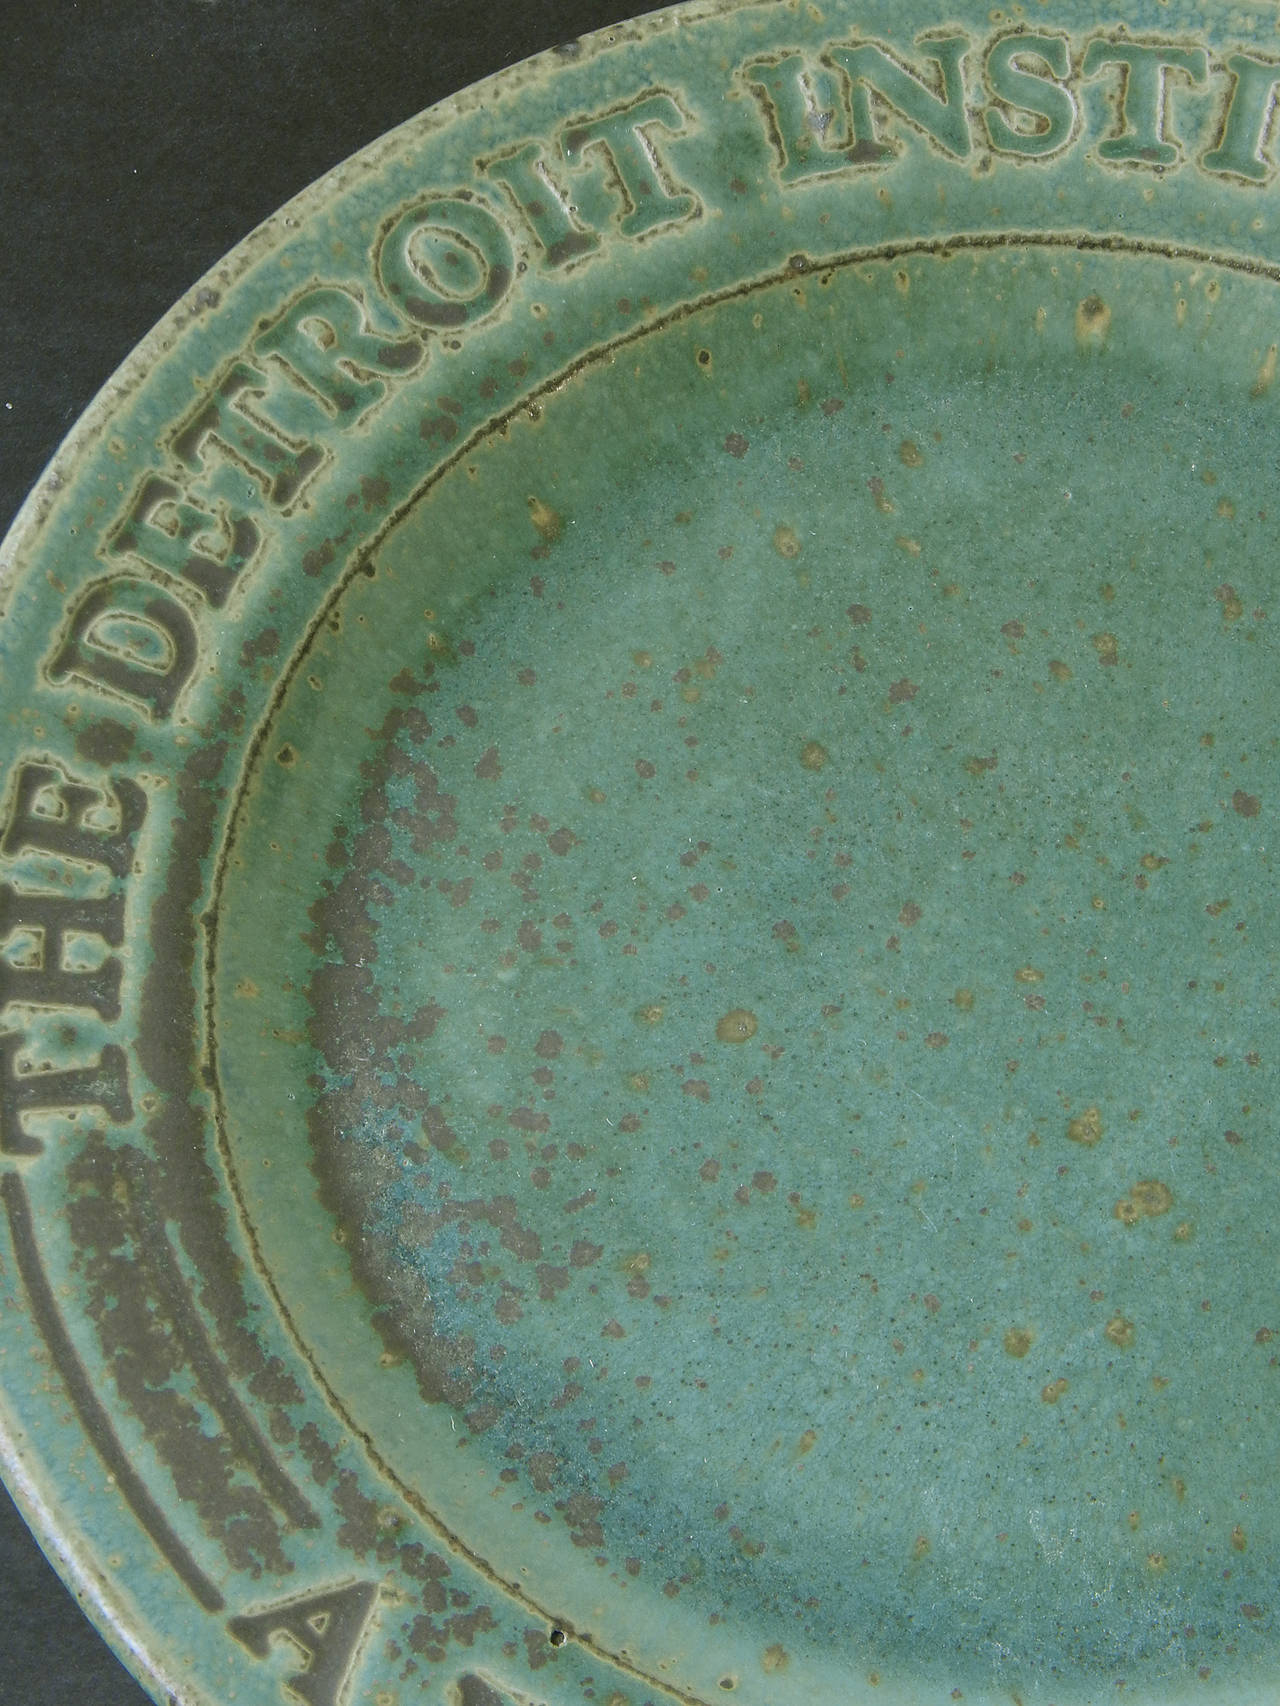 Crafted by one of America's finest Arts and Crafts potteries long after the era was over, this charger, glazed in a lovely, deep forest green, was made by Pewabic Pottery in Detroit for an annual holiday event hosted by the Detroit Institute of